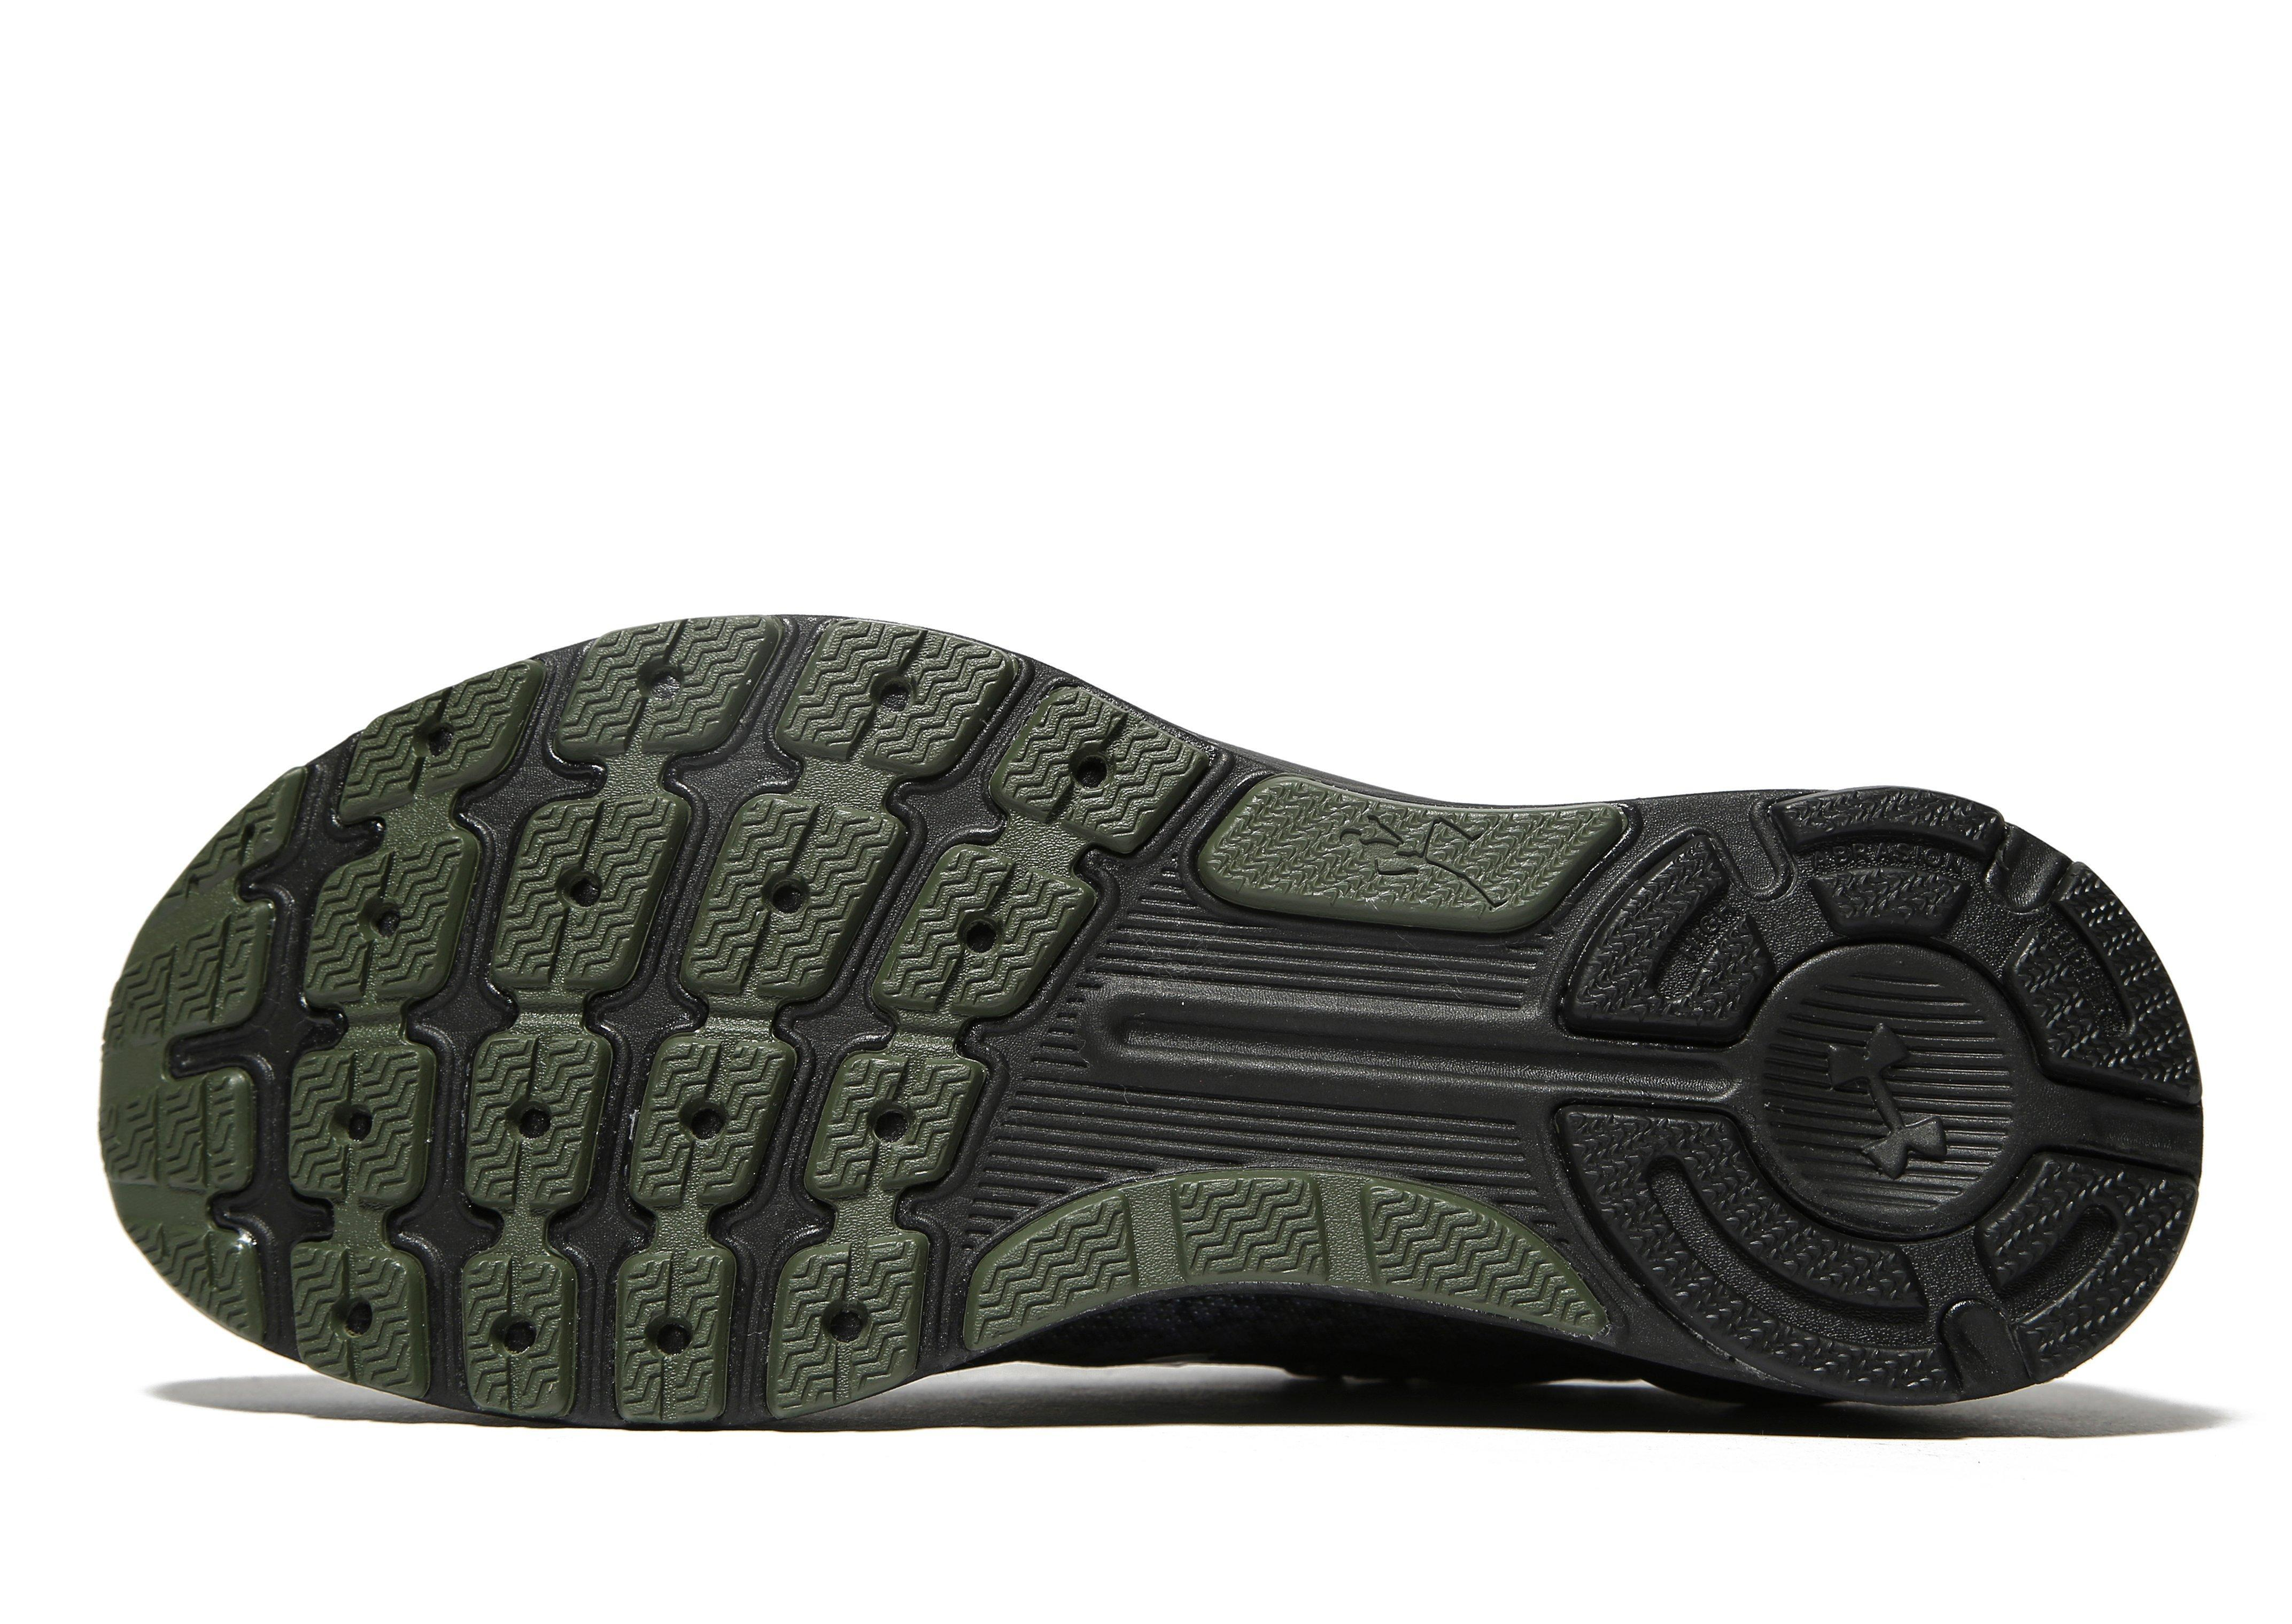 Under Armour Synthetic Bandit 3 Gr in